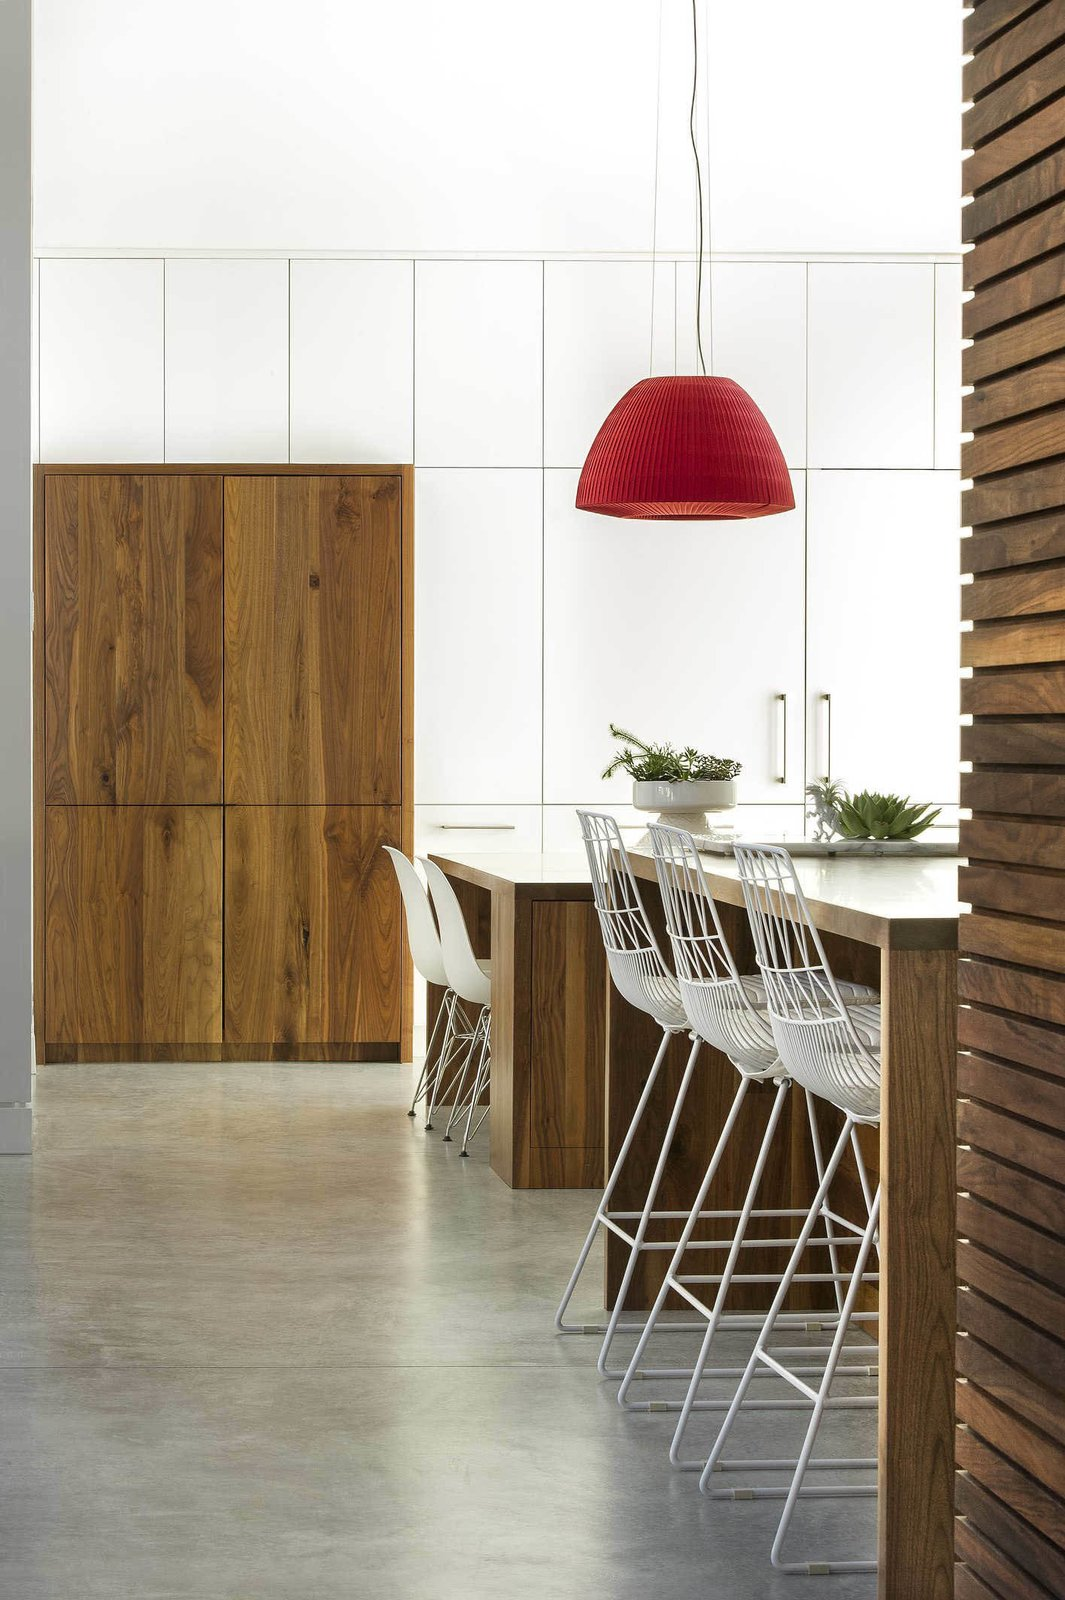 The floors in the kitchen are polished concrete. A Modern Home for a Design-Savvy Family in Florida - Photo 5 of 7